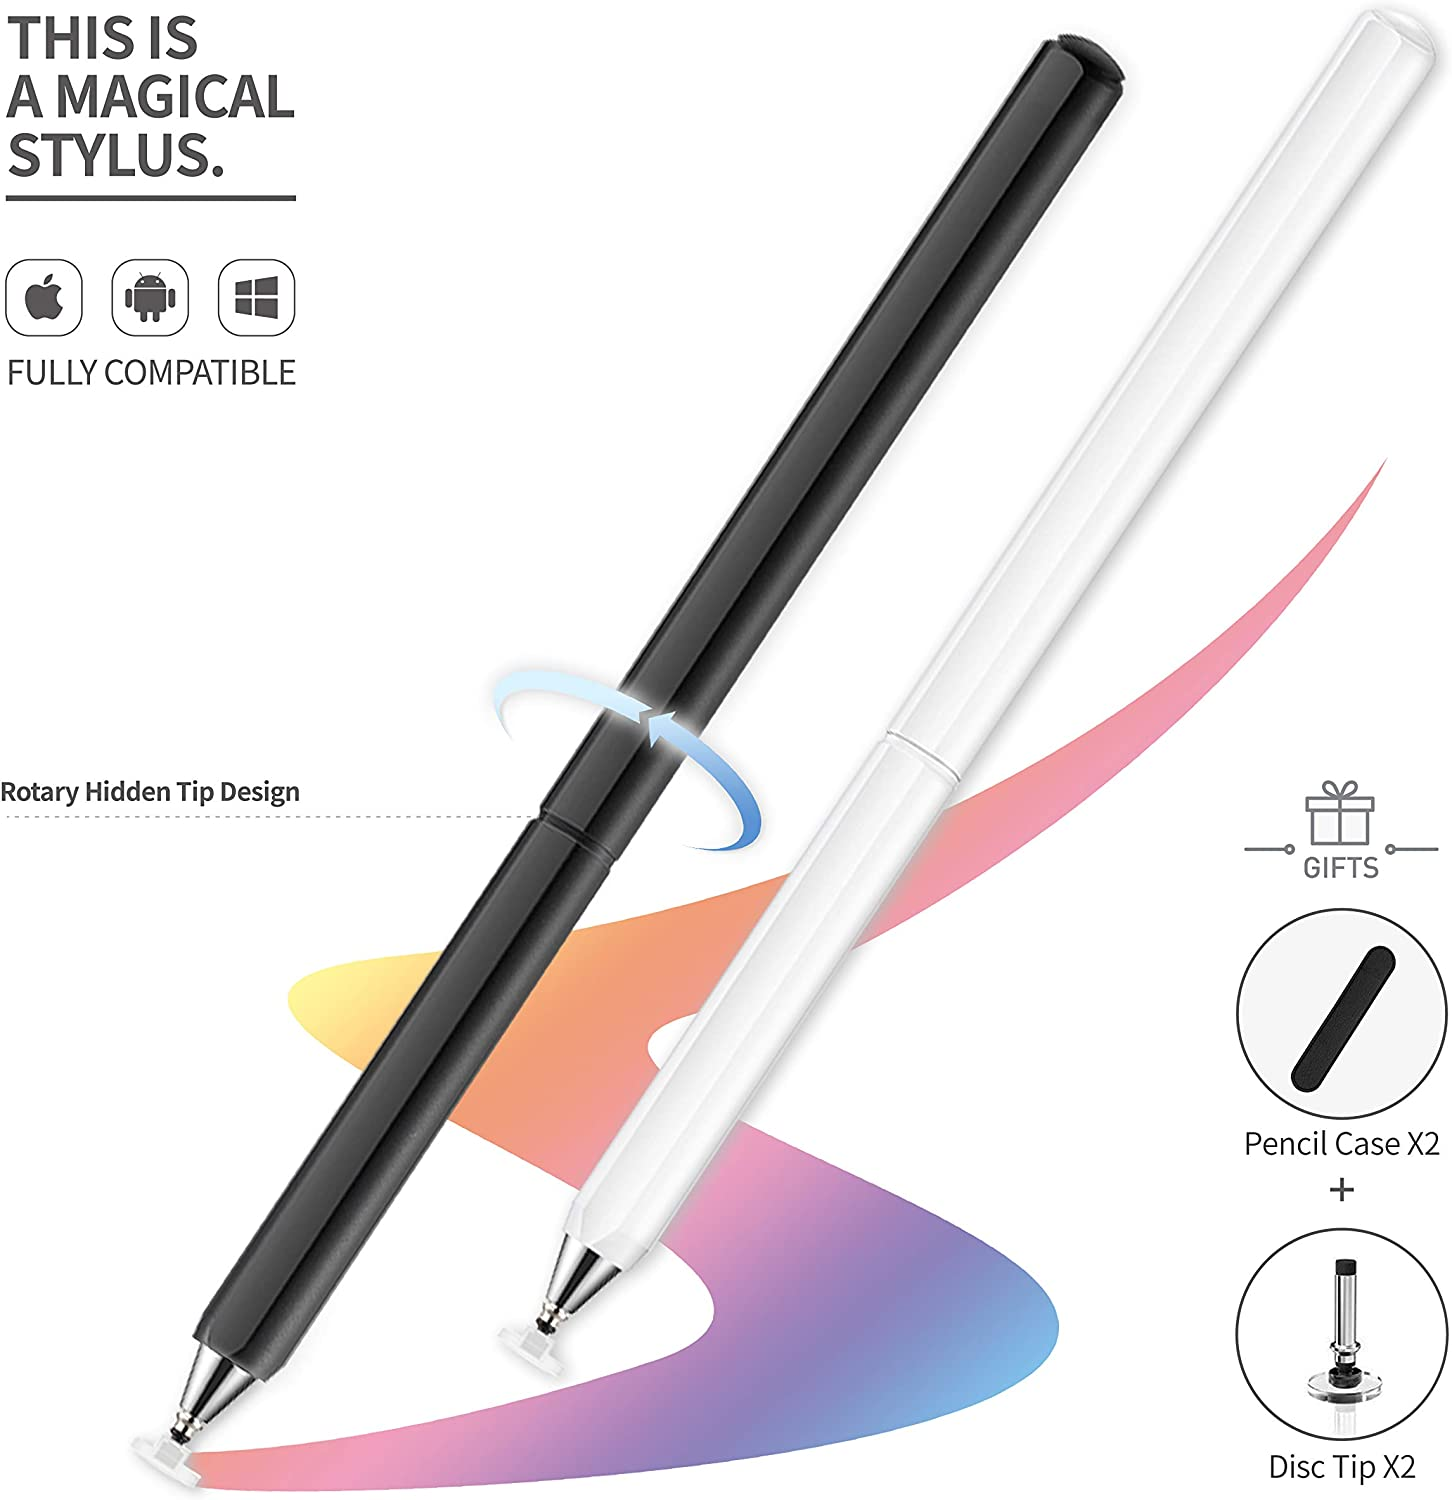 Stylus Pens, Universal High Sensitive & Precision Capacitive Disc Tip Touch Screen Pen Stylus for iPhone/iPad/Pro/Samsung/Galaxy/Tablet/Kindle/iWatch